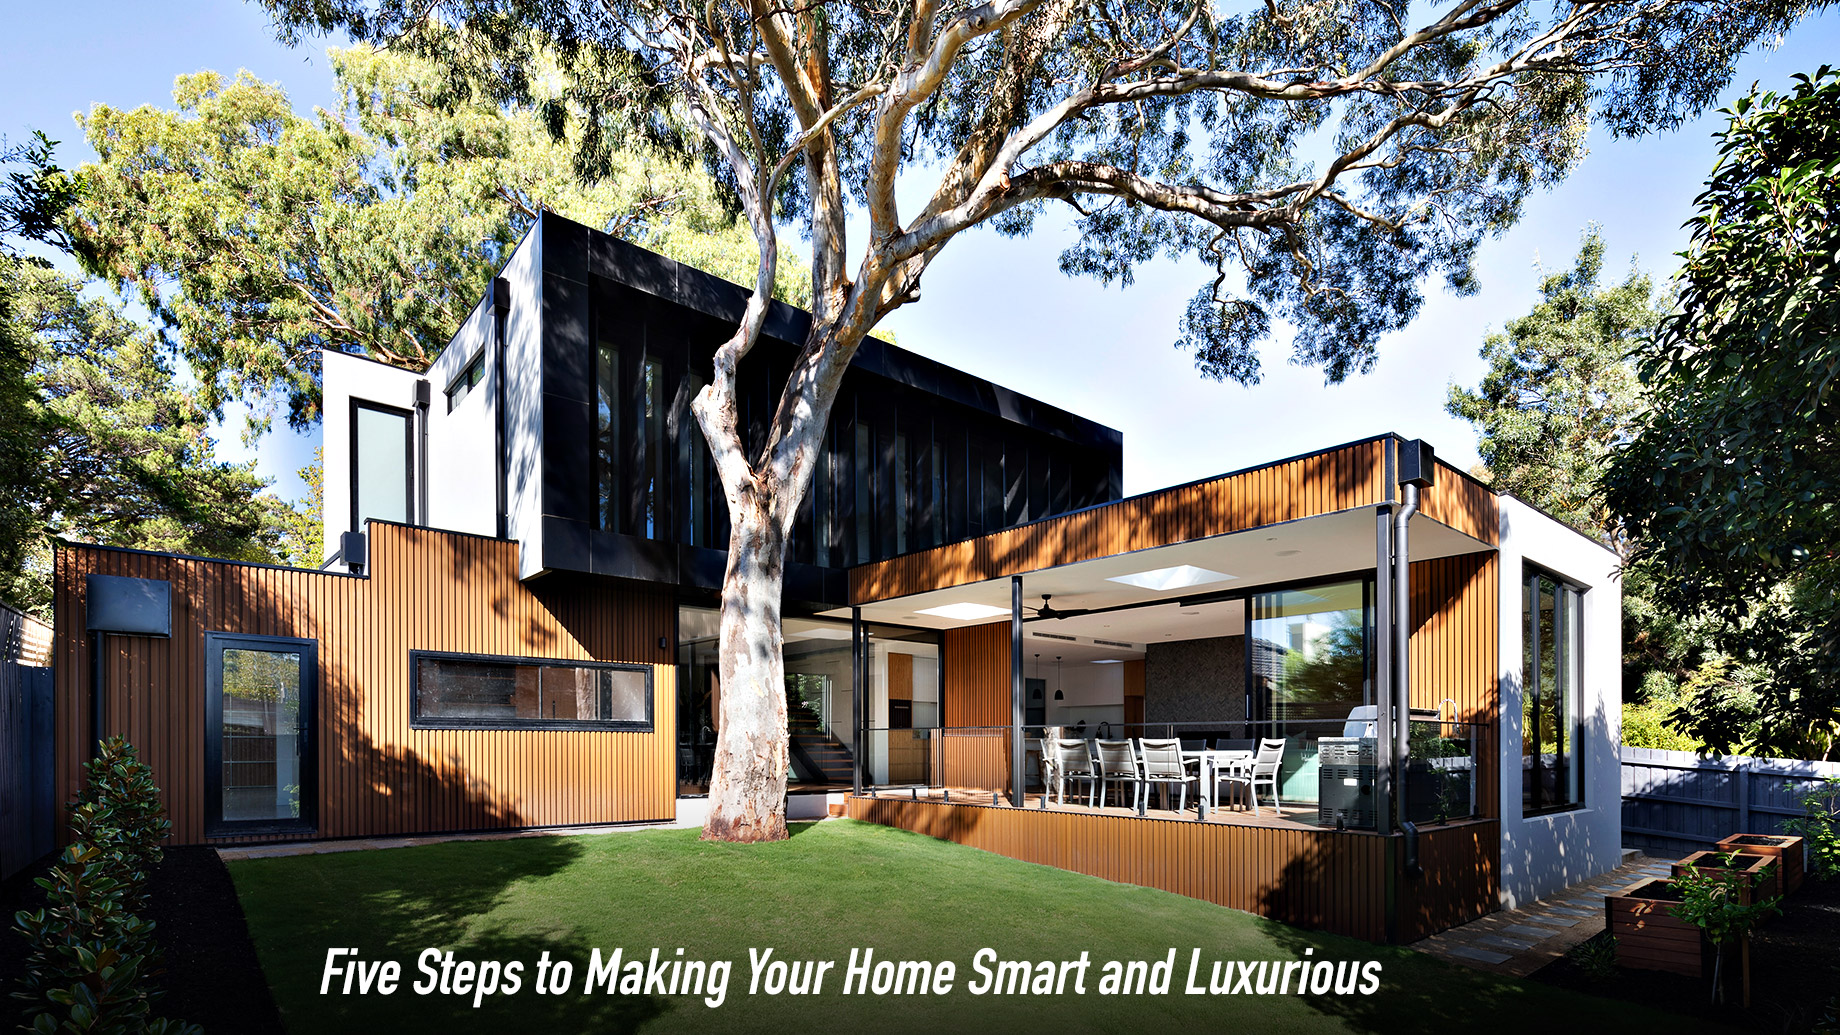 Five Steps to Making Your Home Smart and Luxurious